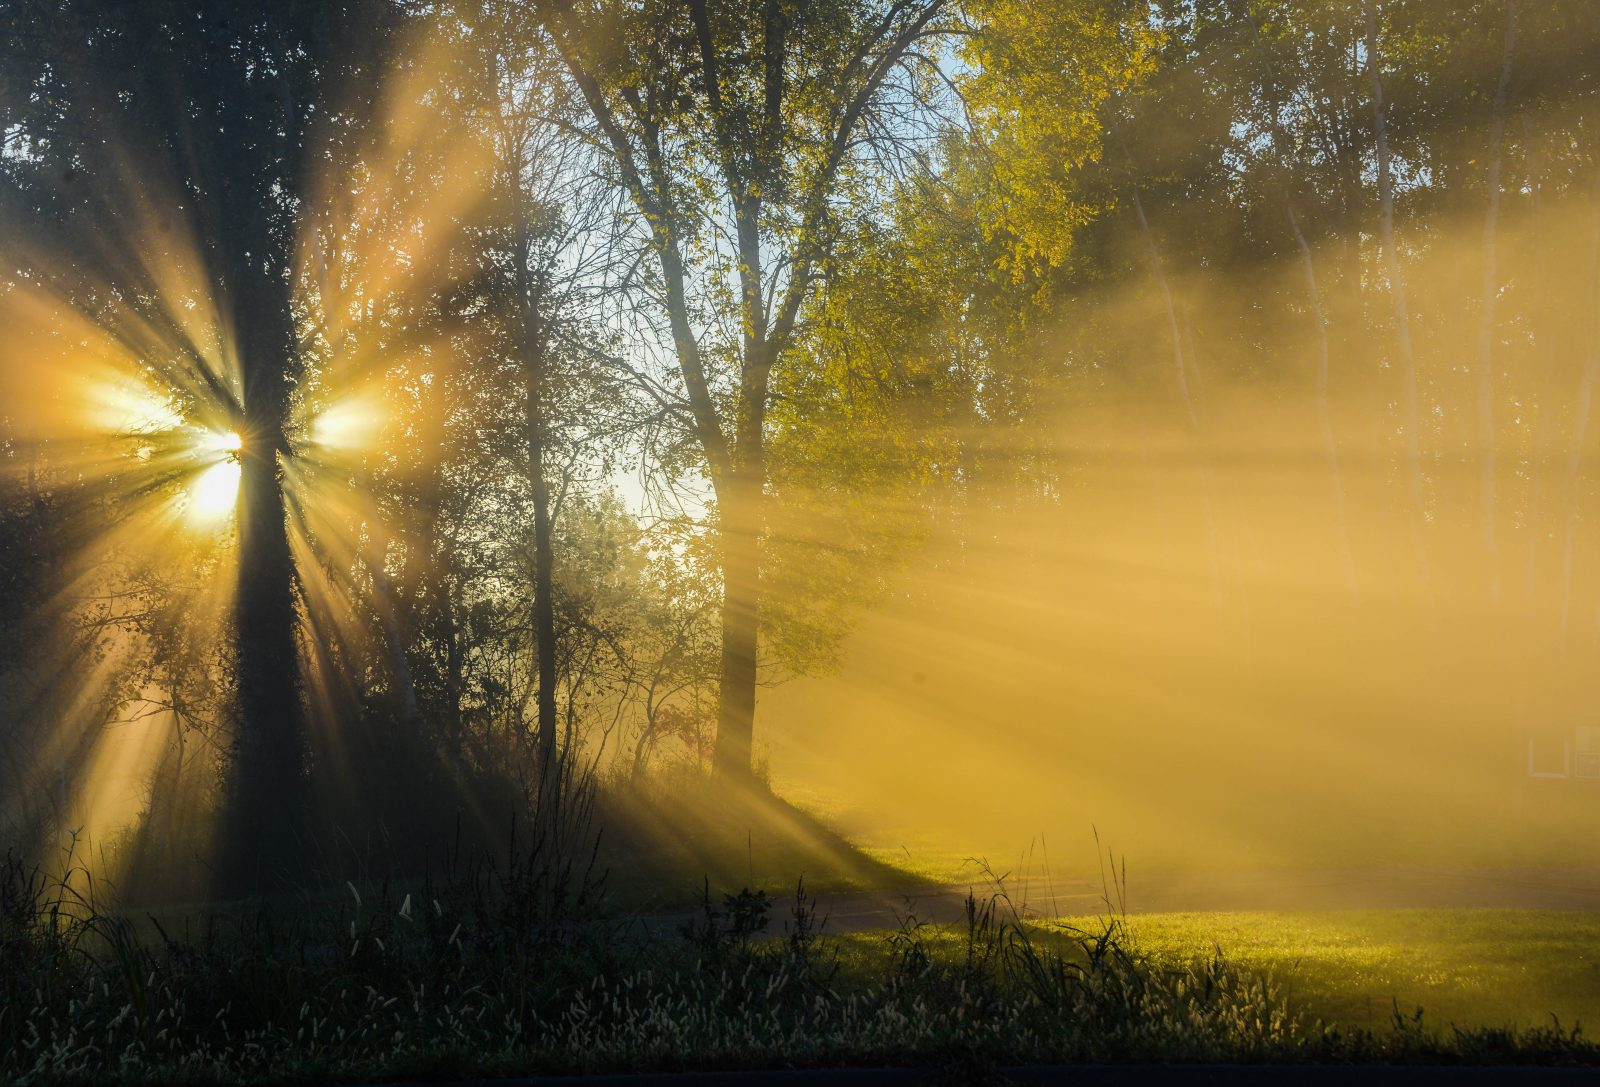 Rays of Light Through the Fog